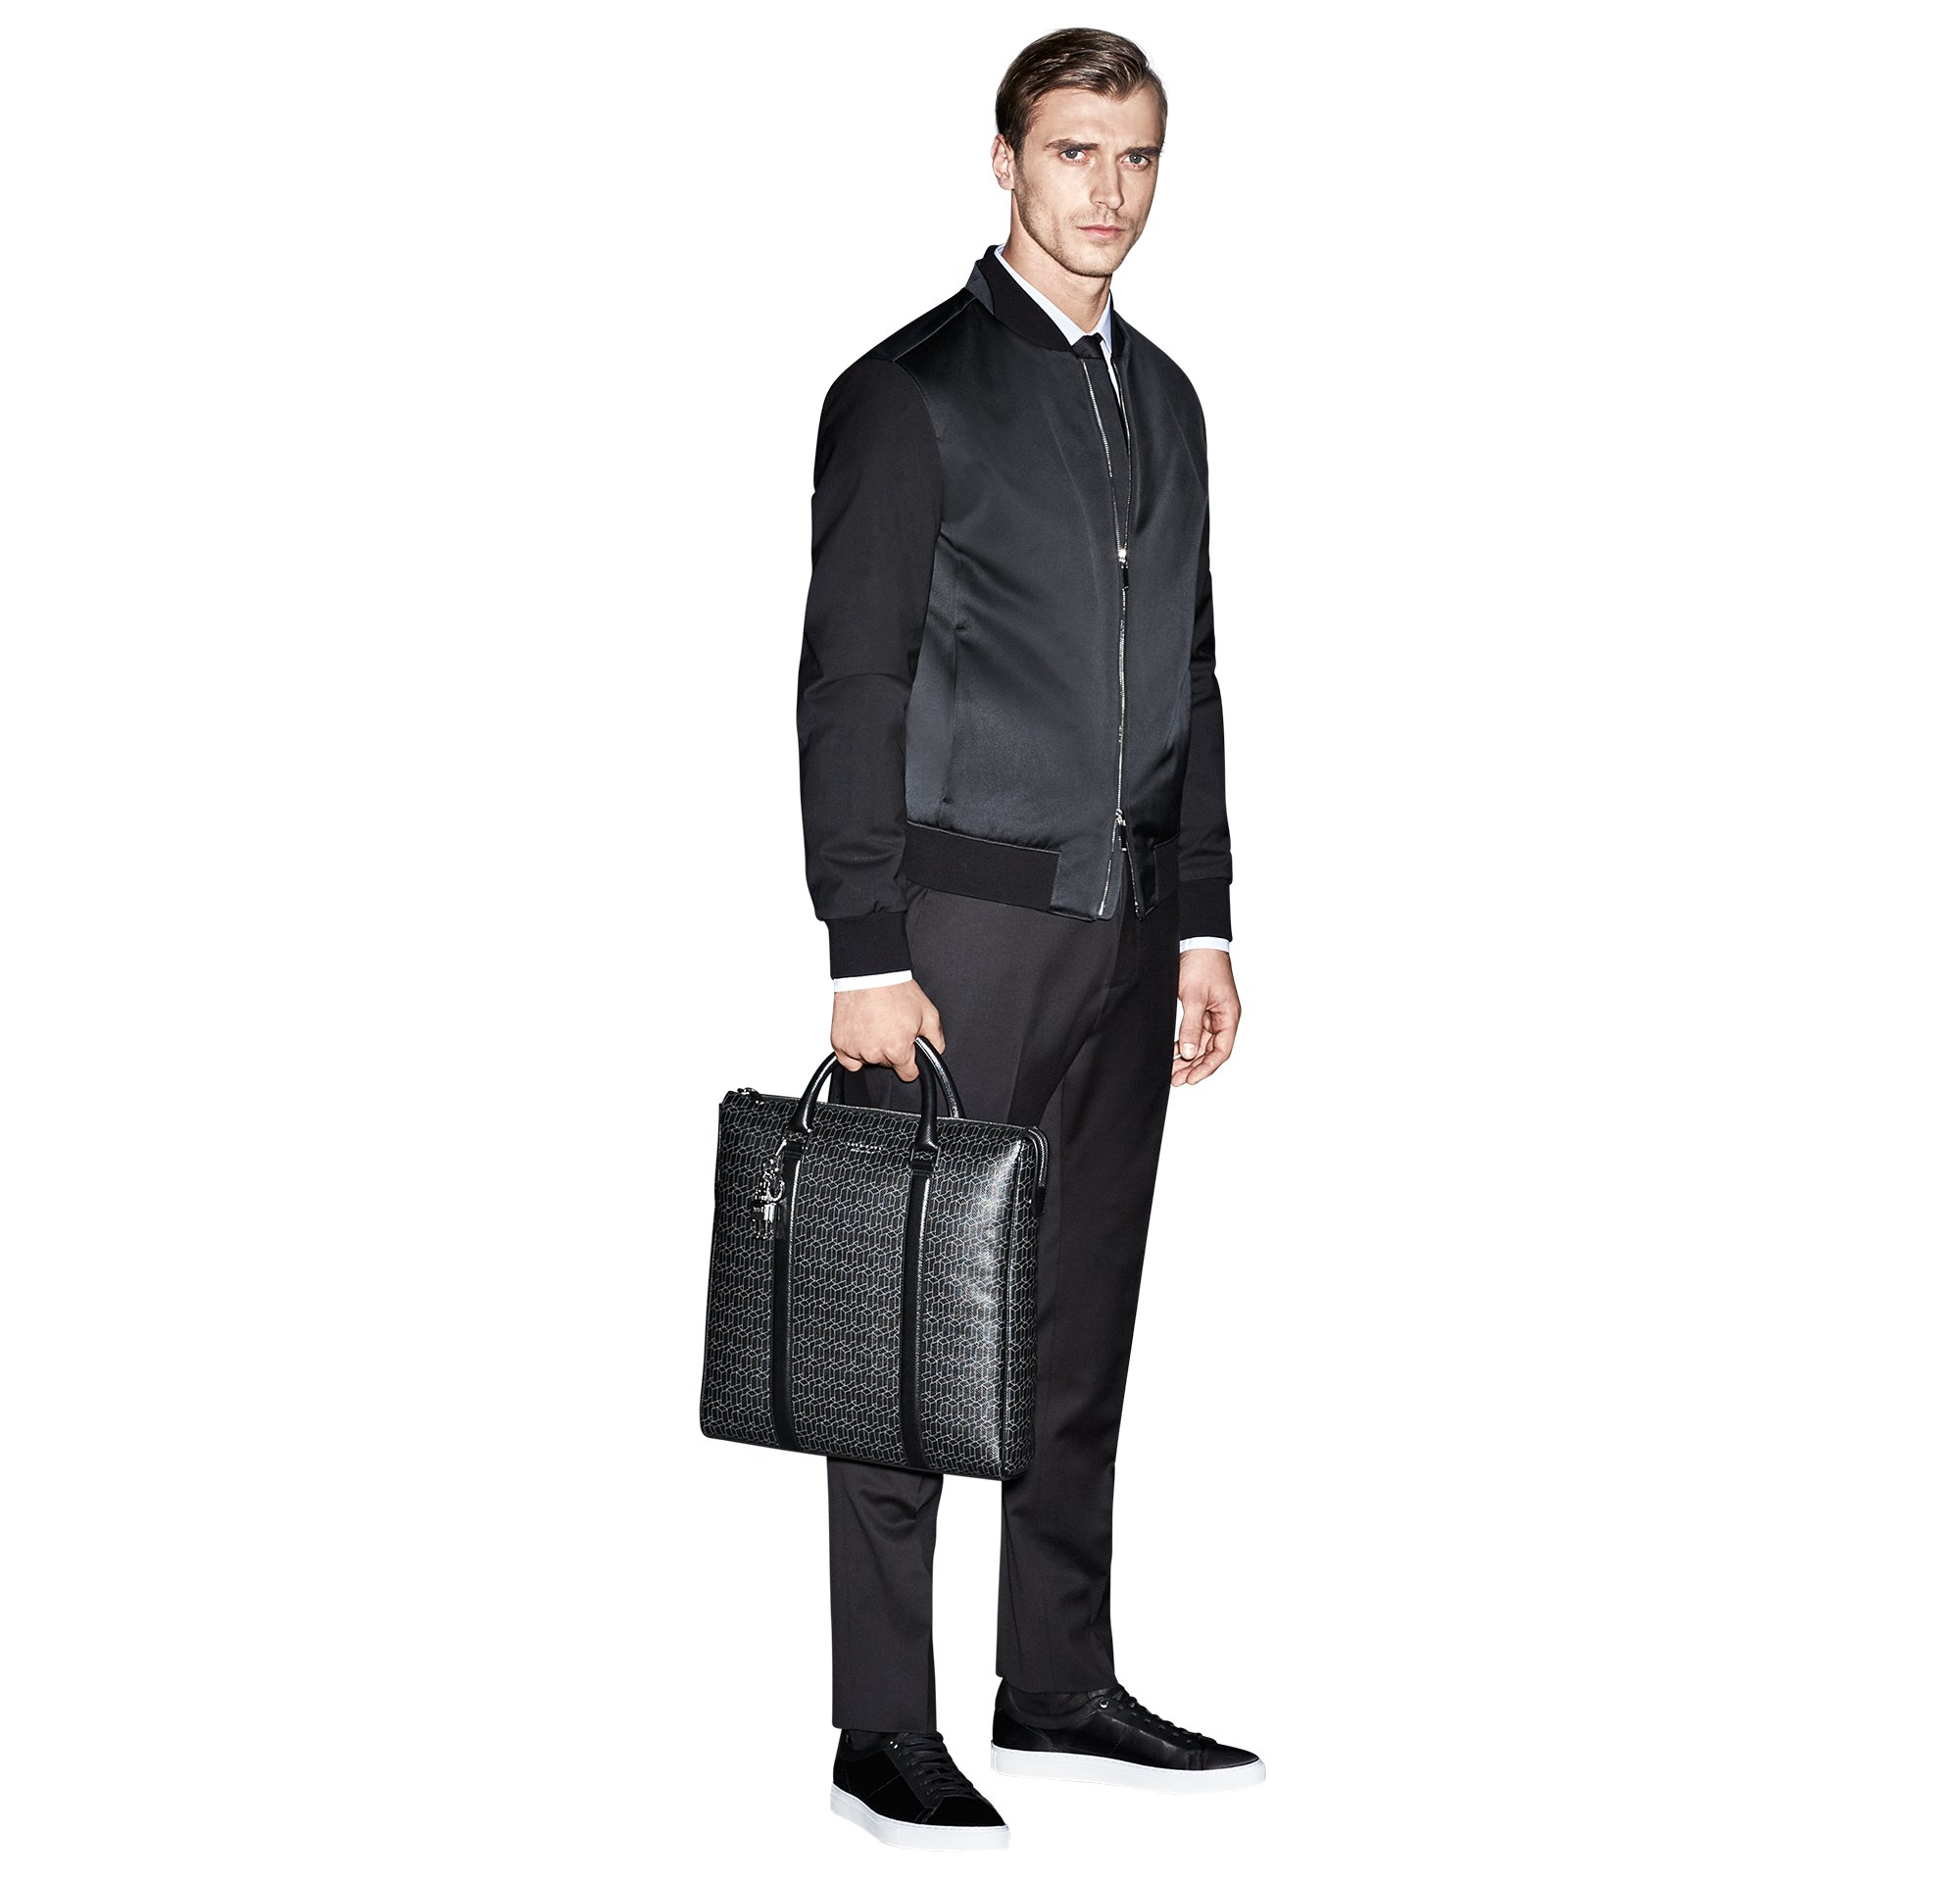 Black bomber jacket and trousers, white shirt and black tie by BOSS